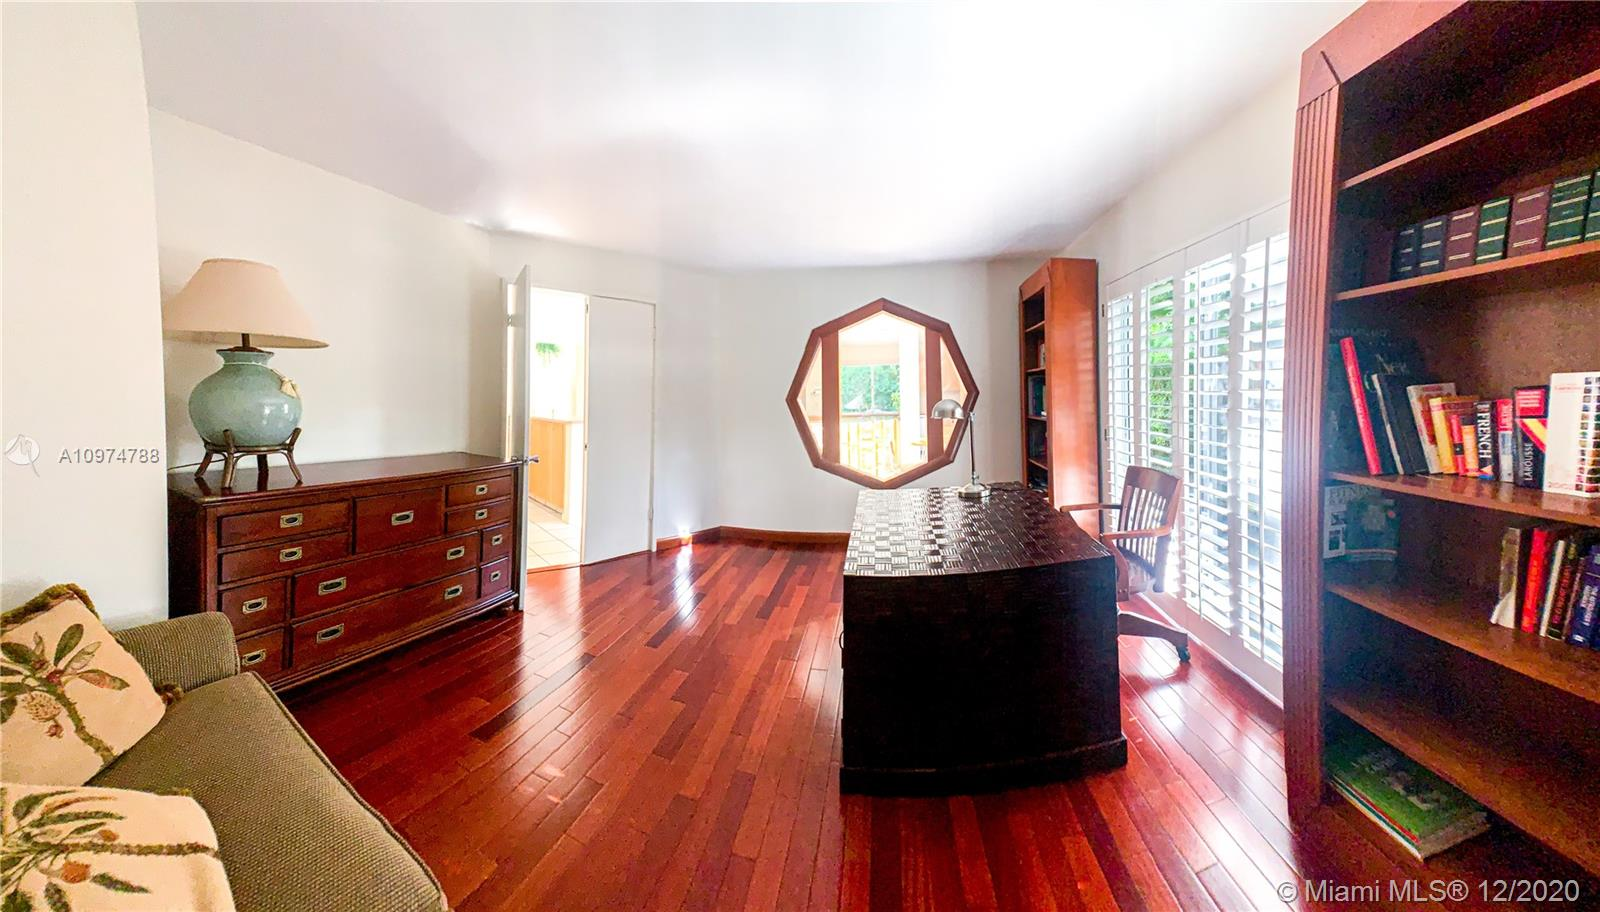 2360 Tigertail Ave, Miami, Florida 33133, 4 Bedrooms Bedrooms, ,3 BathroomsBathrooms,Residential,For Sale,2360 Tigertail Ave,A10974788